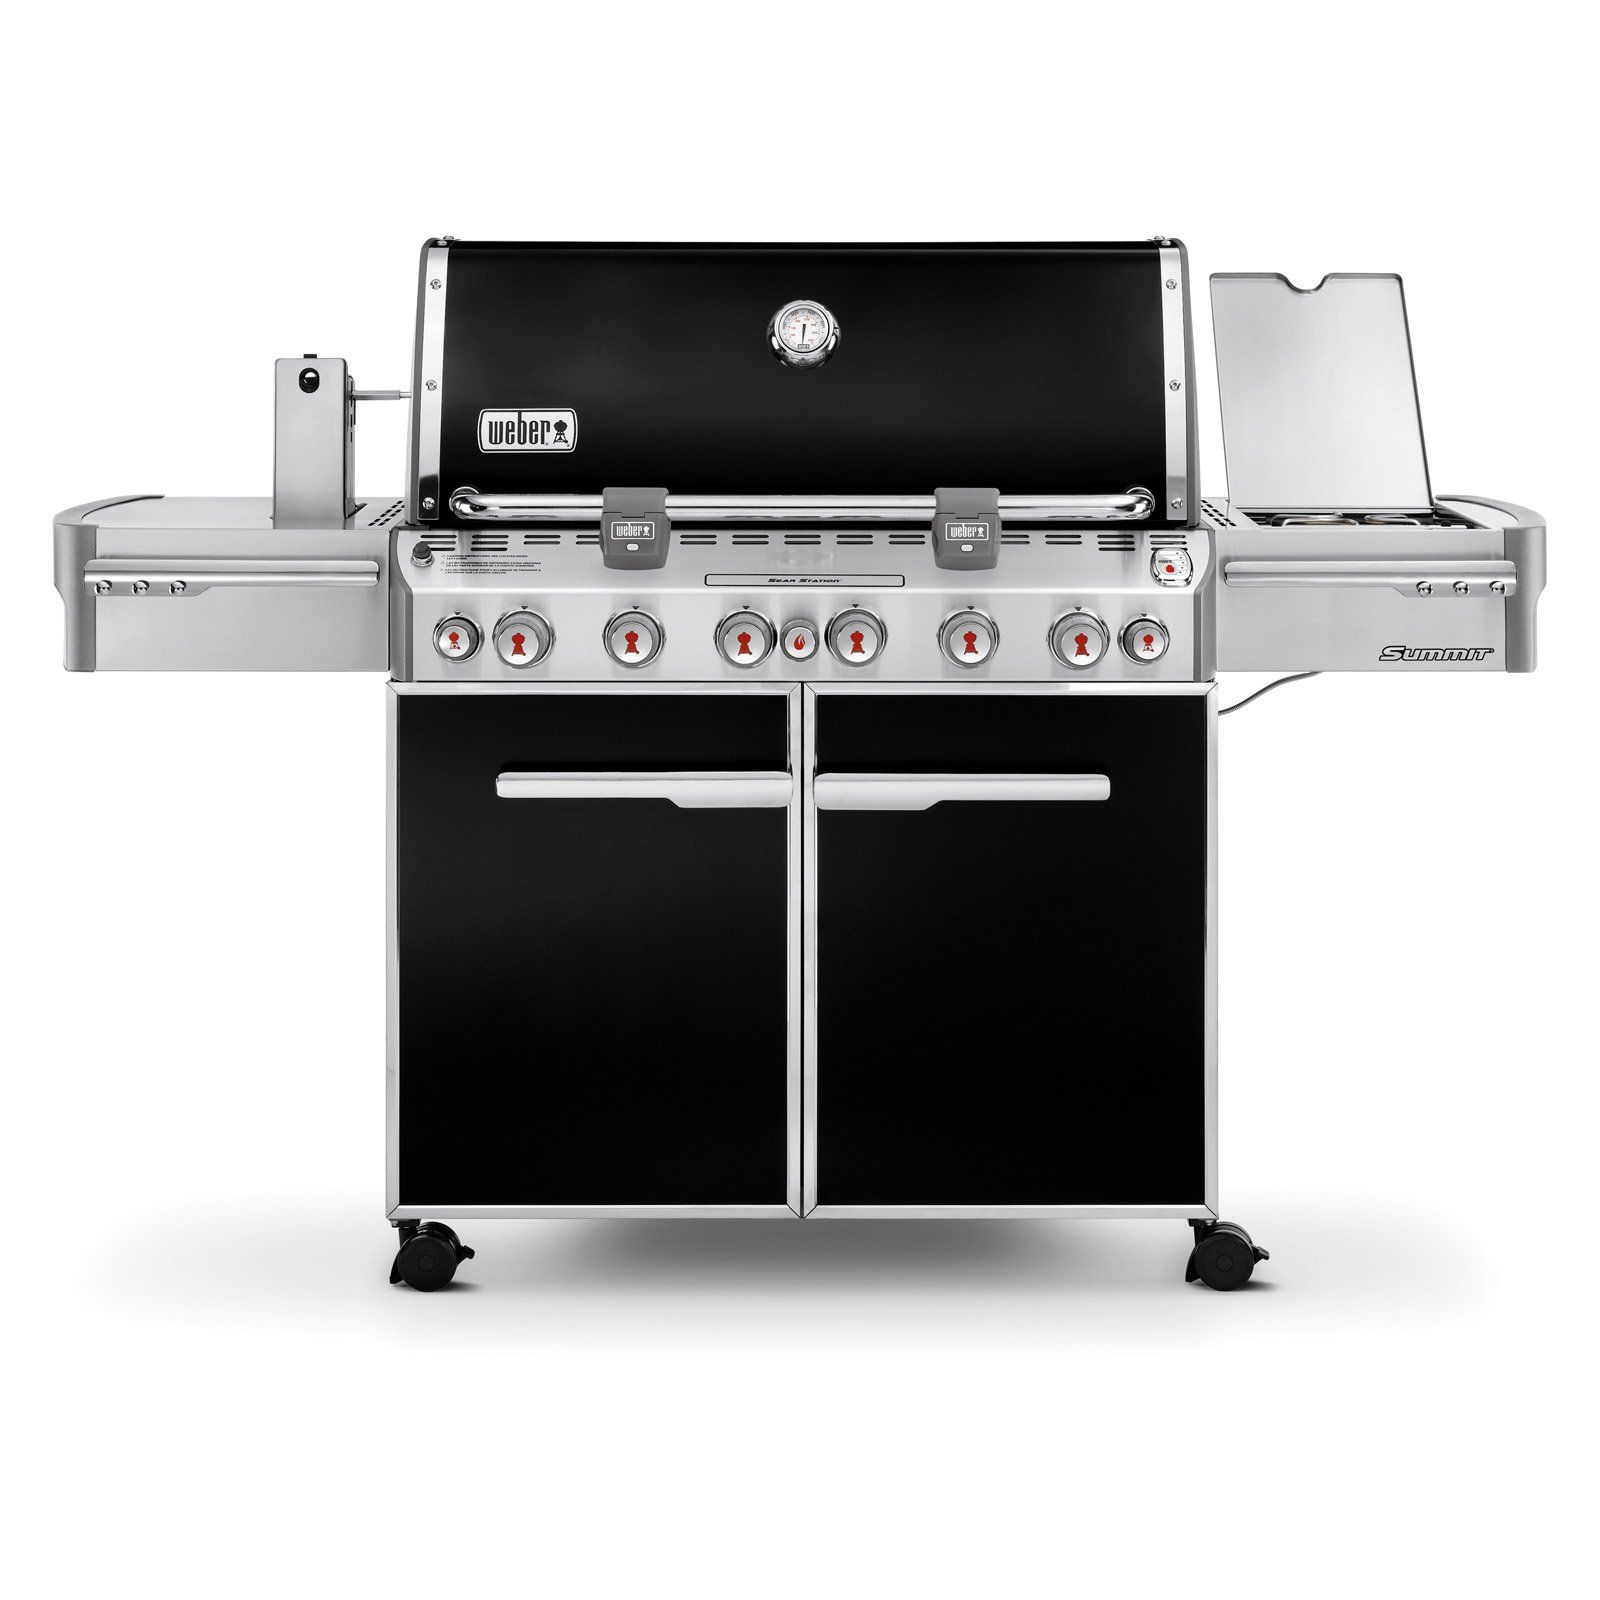 die besten 25 weber gas grill ideen auf pinterest r ucherofen gas beste gasgrills und. Black Bedroom Furniture Sets. Home Design Ideas